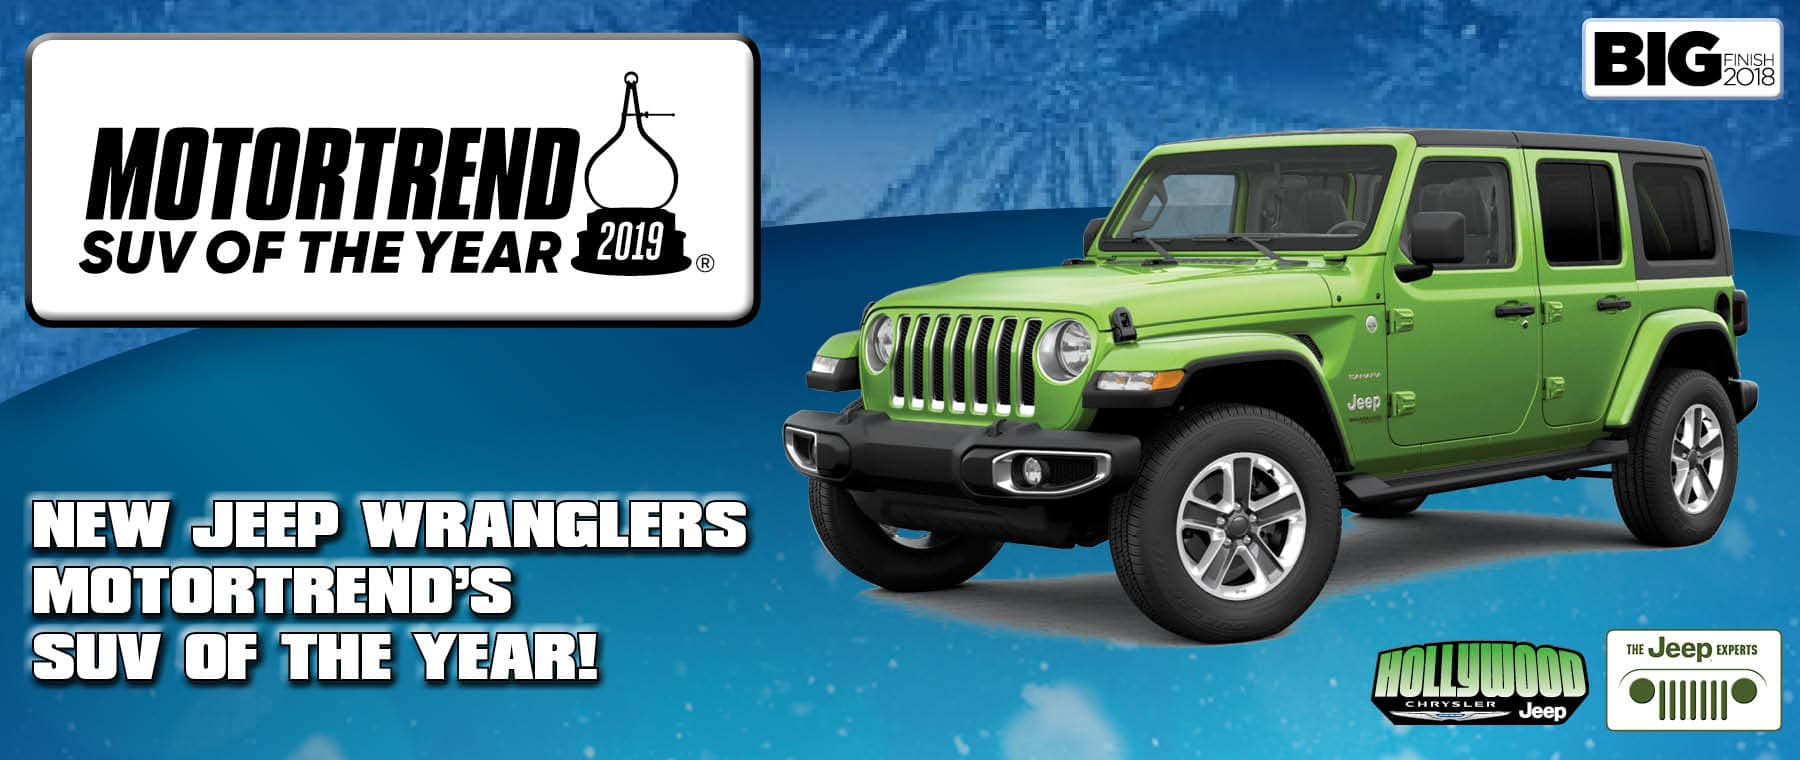 Wrangler Motor Trend SUV of the Year